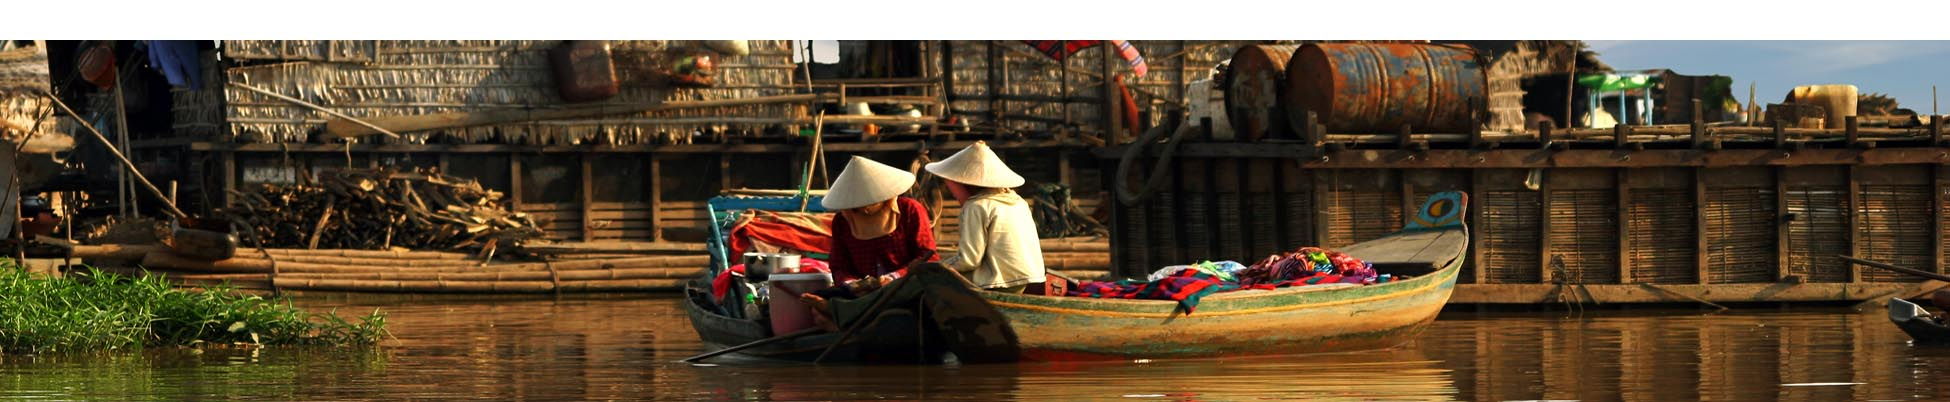 pirogue villages flottants tonle sap cambodge